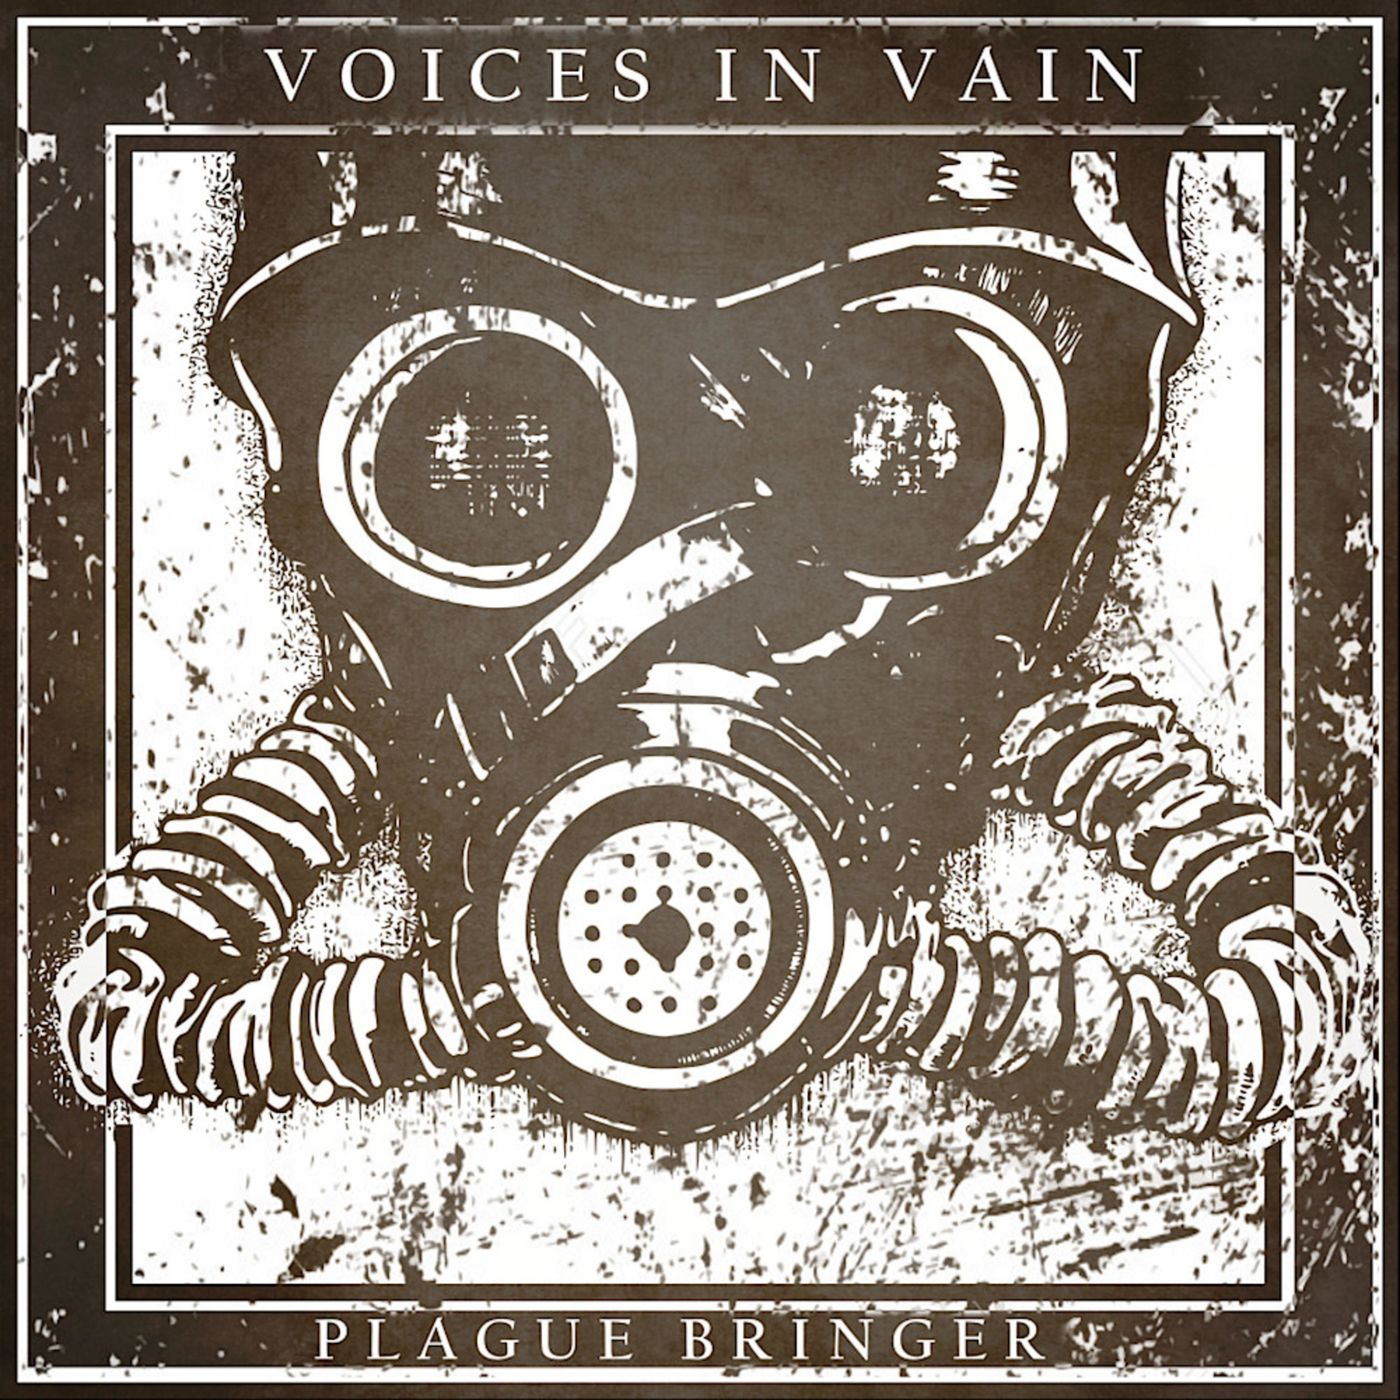 Voices in Vain - Plague Bringer [single] (2019)